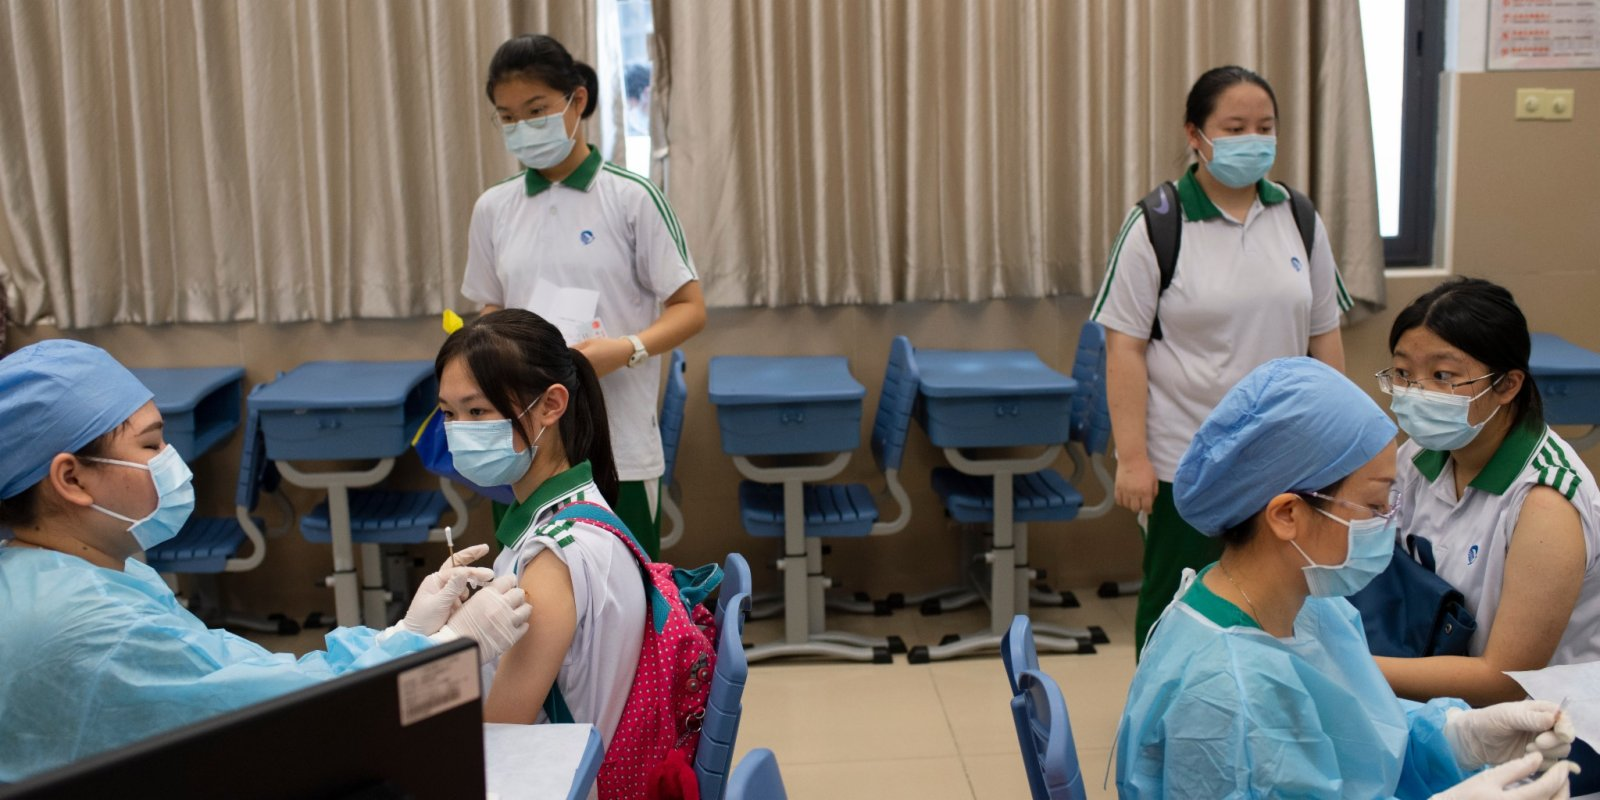 Over 1.6 billion doses of COVID-19 vaccines administered in China